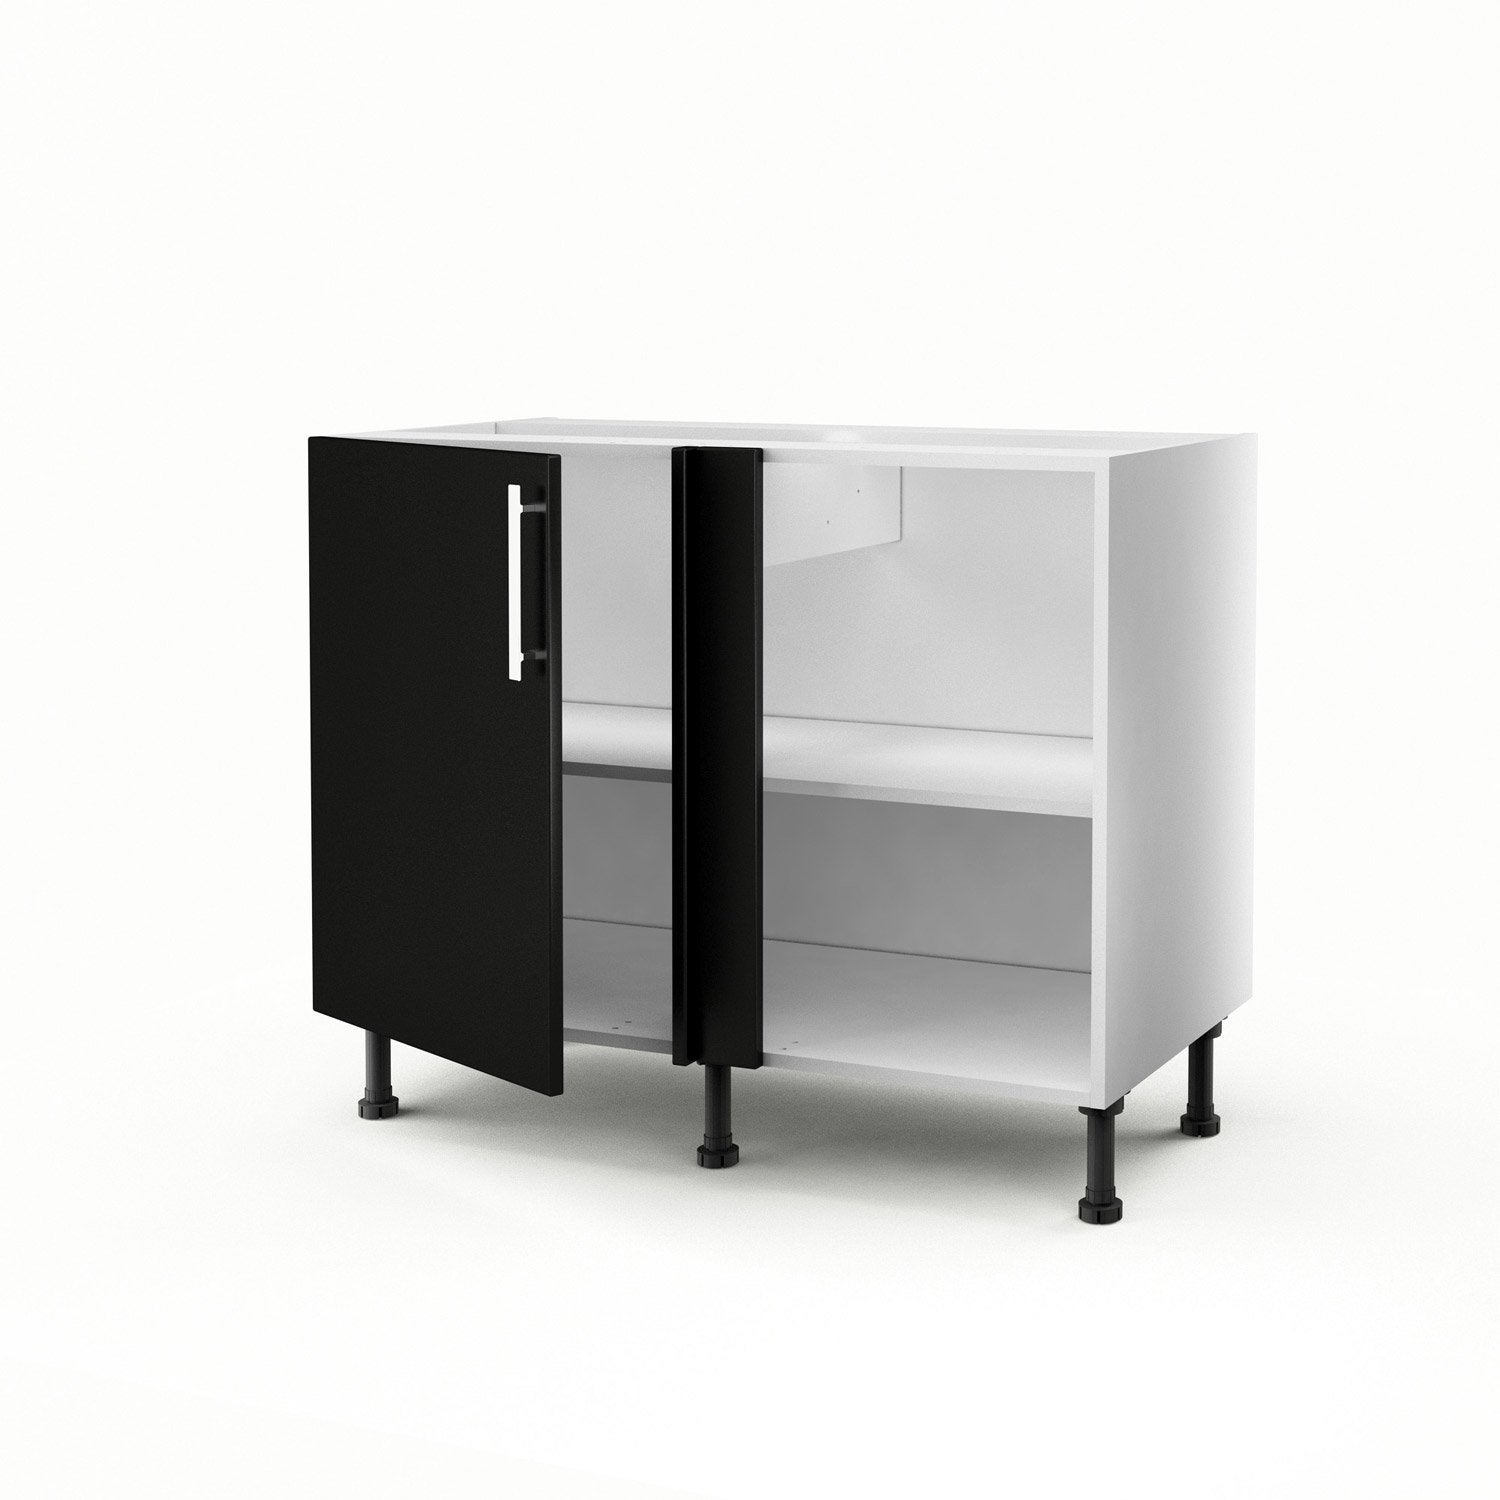 meuble de cuisine bas d 39 angle noir 1 porte d lice h70xl100xp56 cm leroy merlin. Black Bedroom Furniture Sets. Home Design Ideas